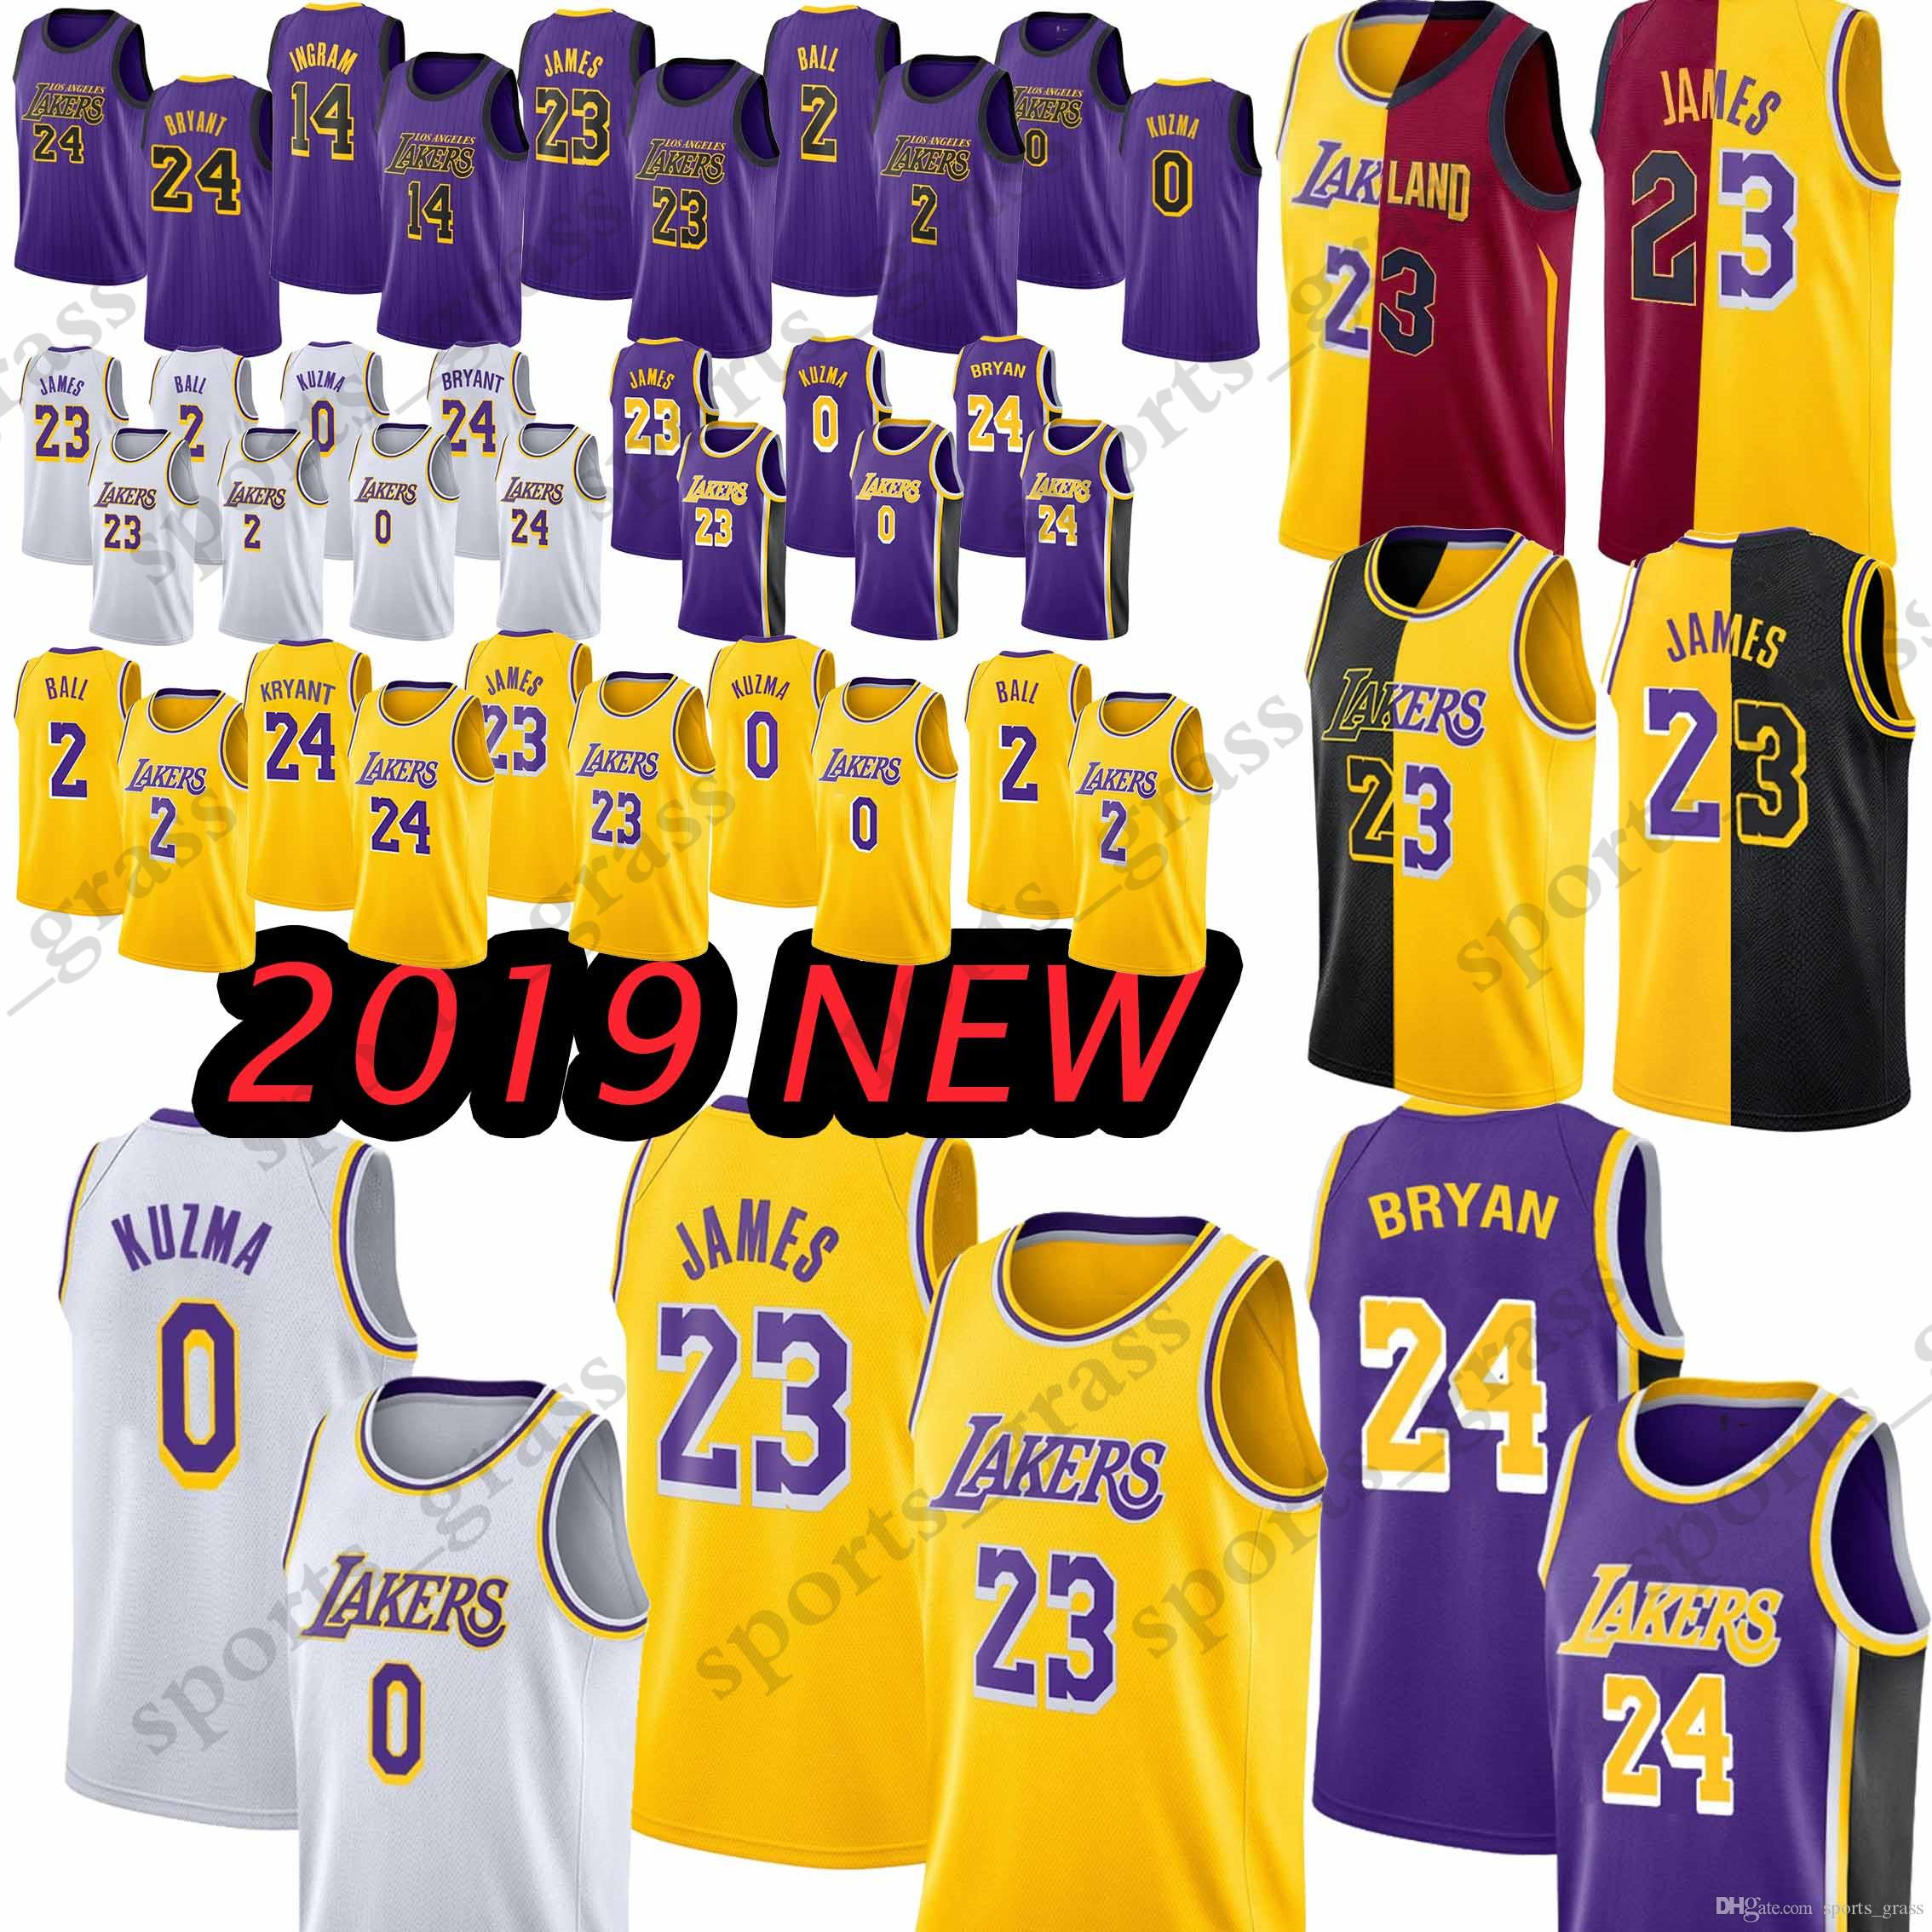 0f914b7dc High-quality Los Angeles Lakers 23 LeBron James Jerseys 2 Lonzo Ball ...